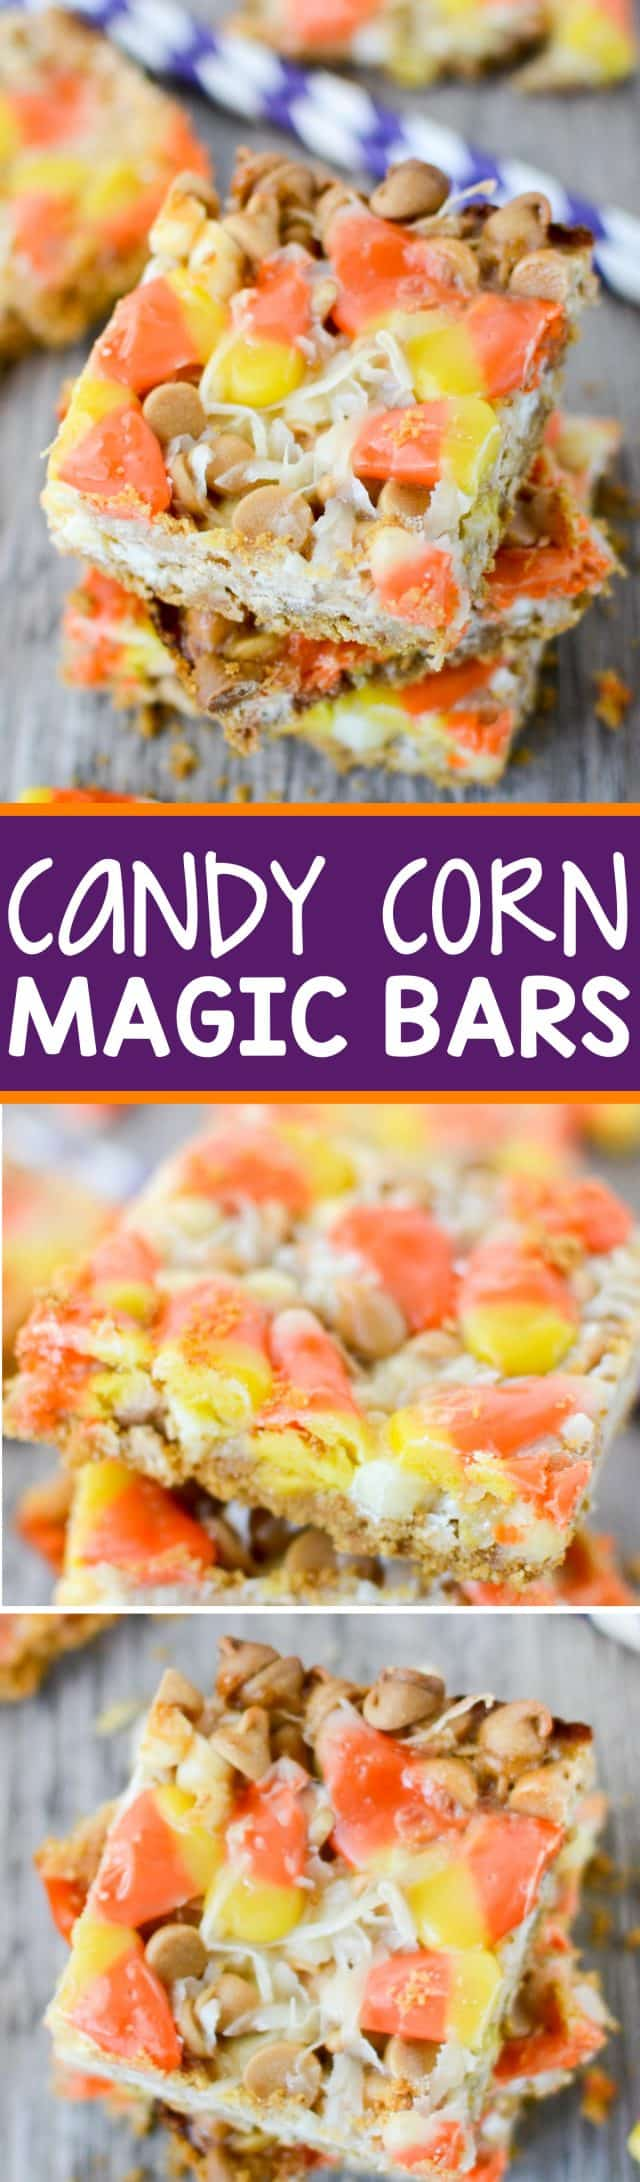 Candy Corn Magic Bars are PERFECT for Halloween! They have a graham cracker crust and are filled with white chocolate, peanut butter chips, and lots of candy corn!